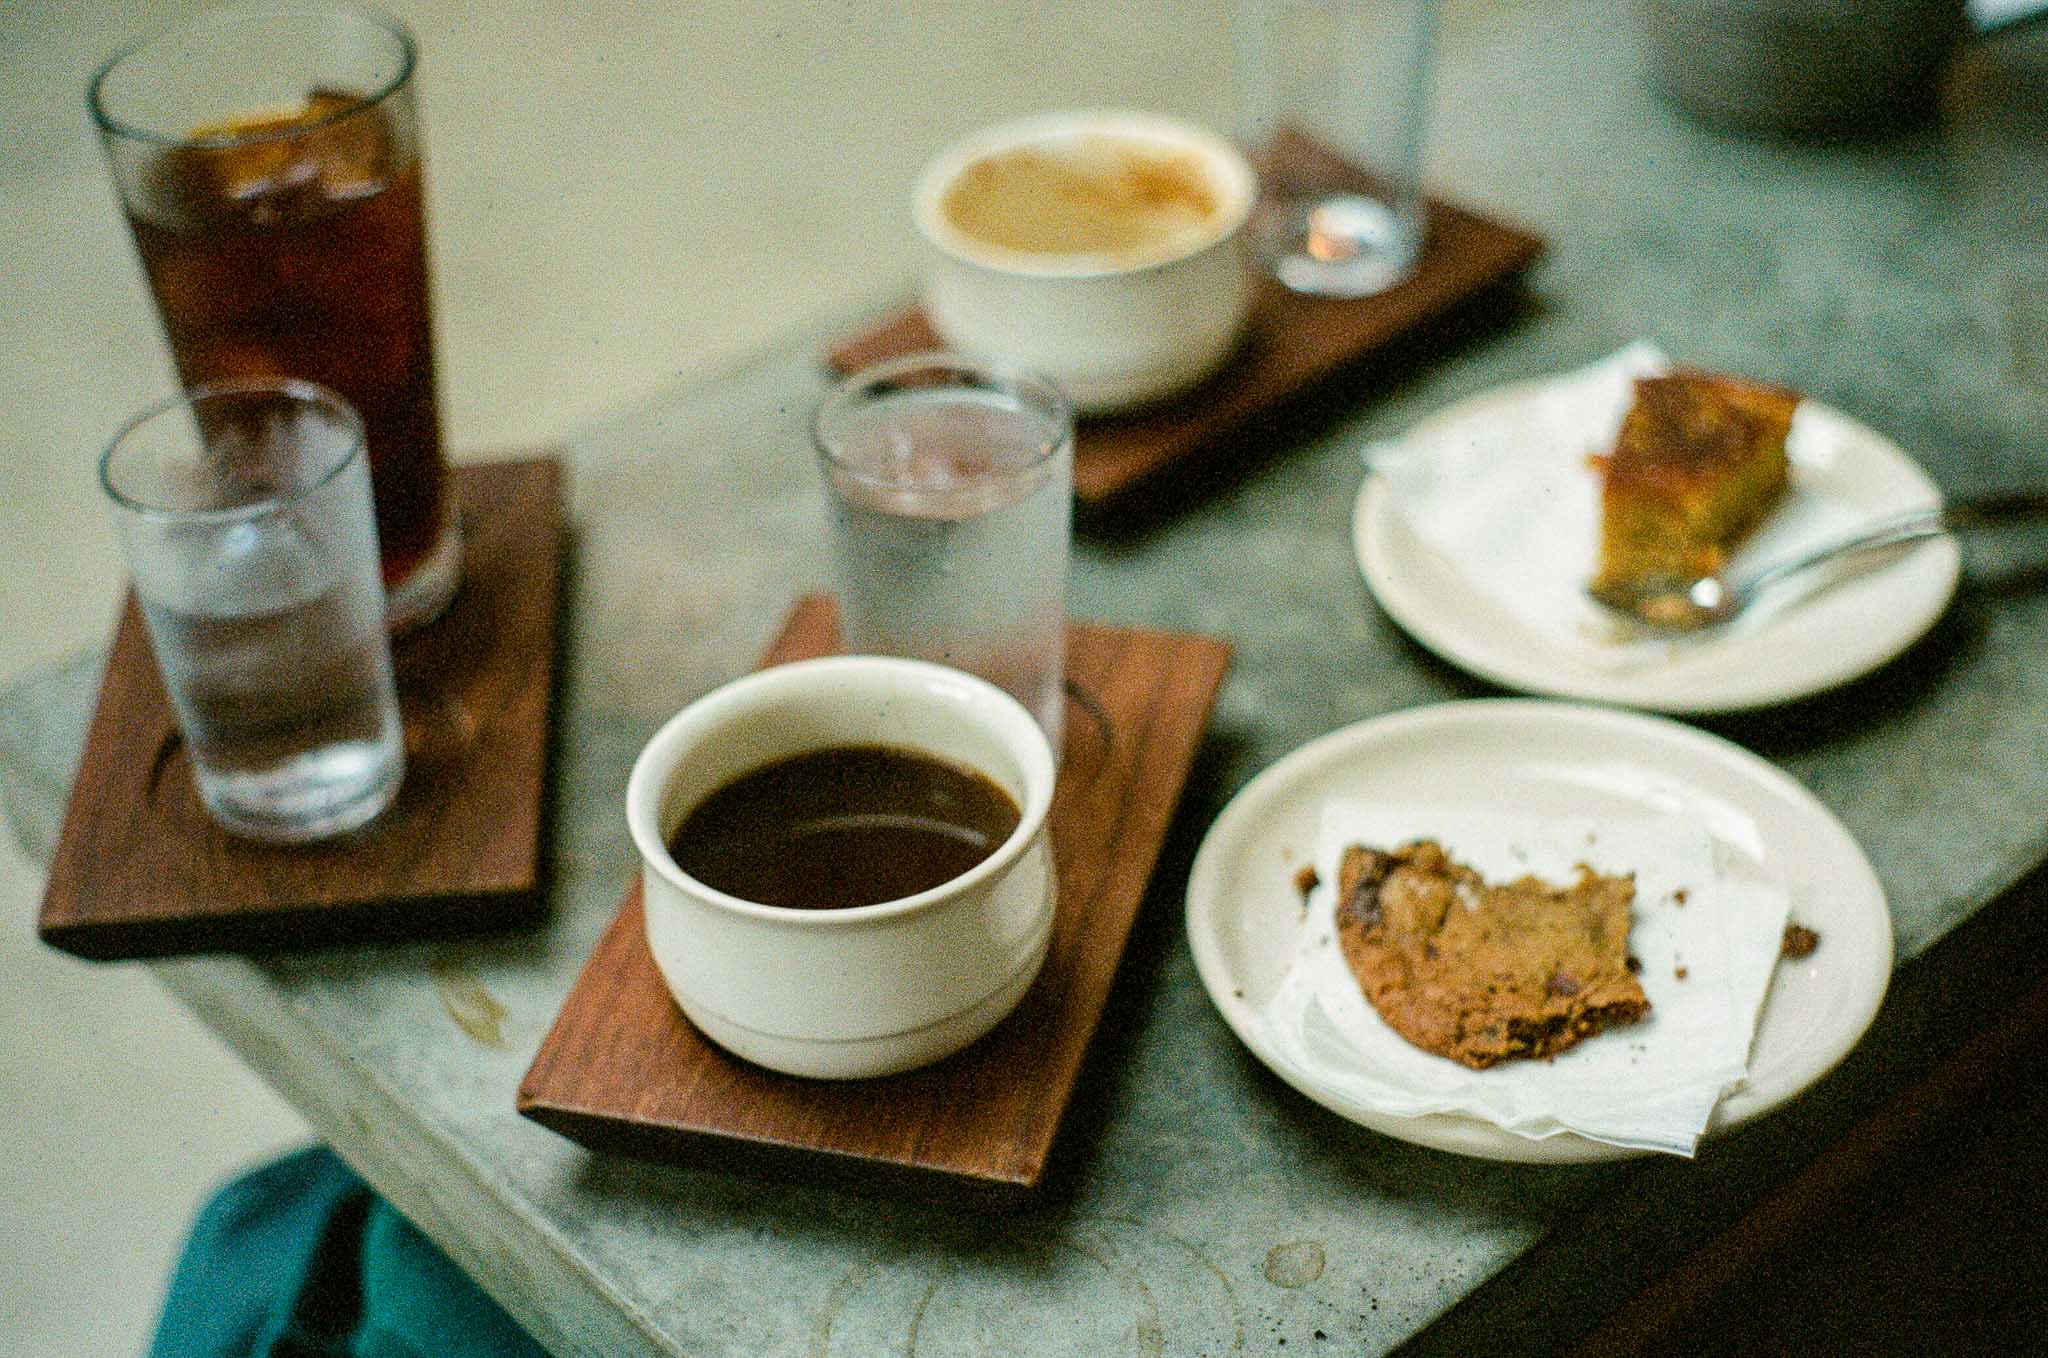 A table filled with wooden platters and plates of coffee and pastries at Sey Coffee in Brooklyn New York